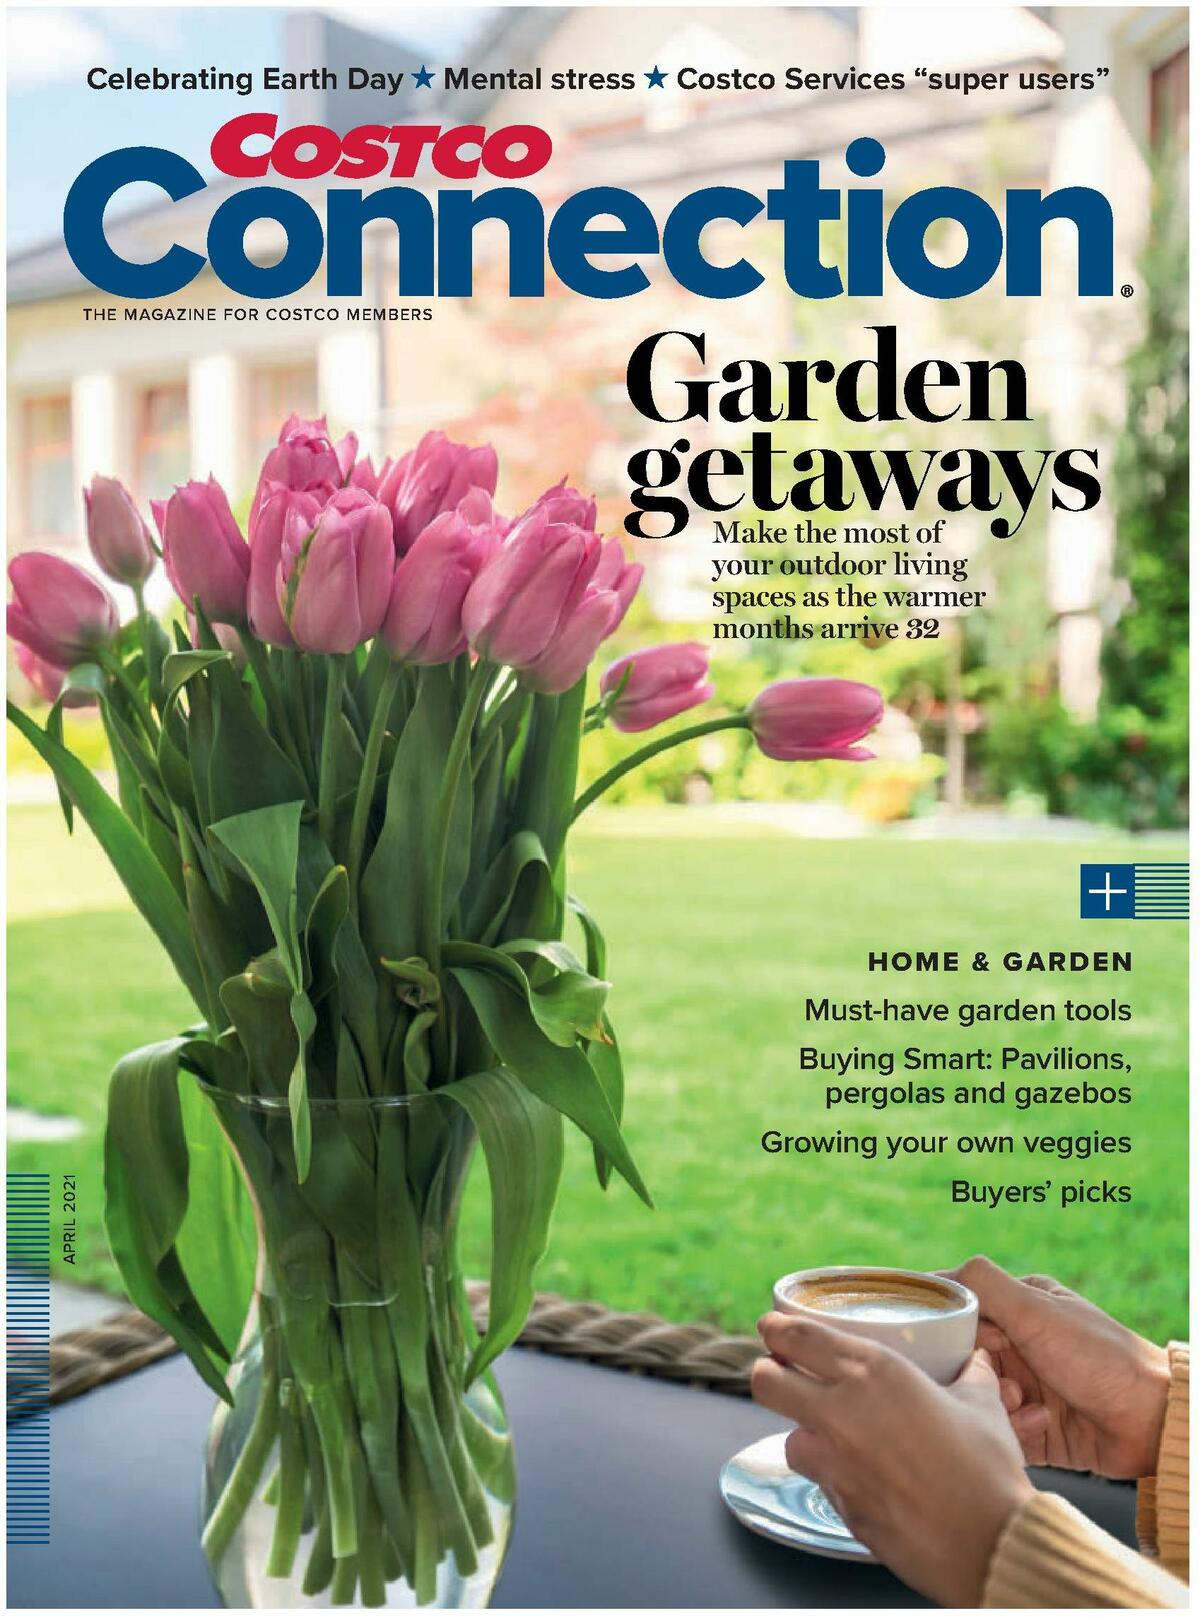 Costco Connection April Weekly Ad from April 1